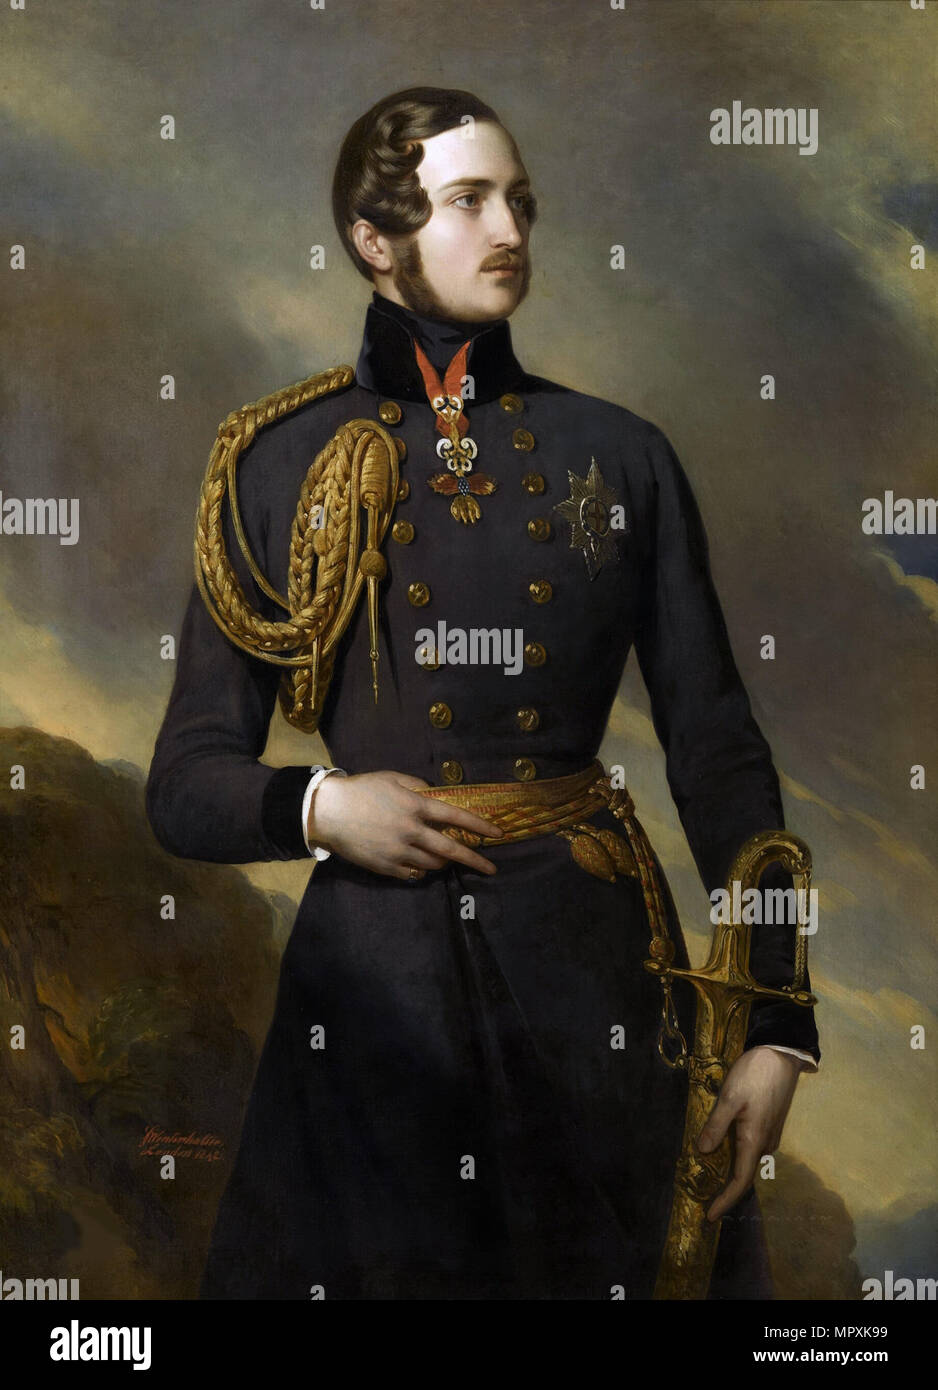 Portrait of Prince Albert of Saxe-Coburg and Gotha (1819-1861), 1842. - Stock Image